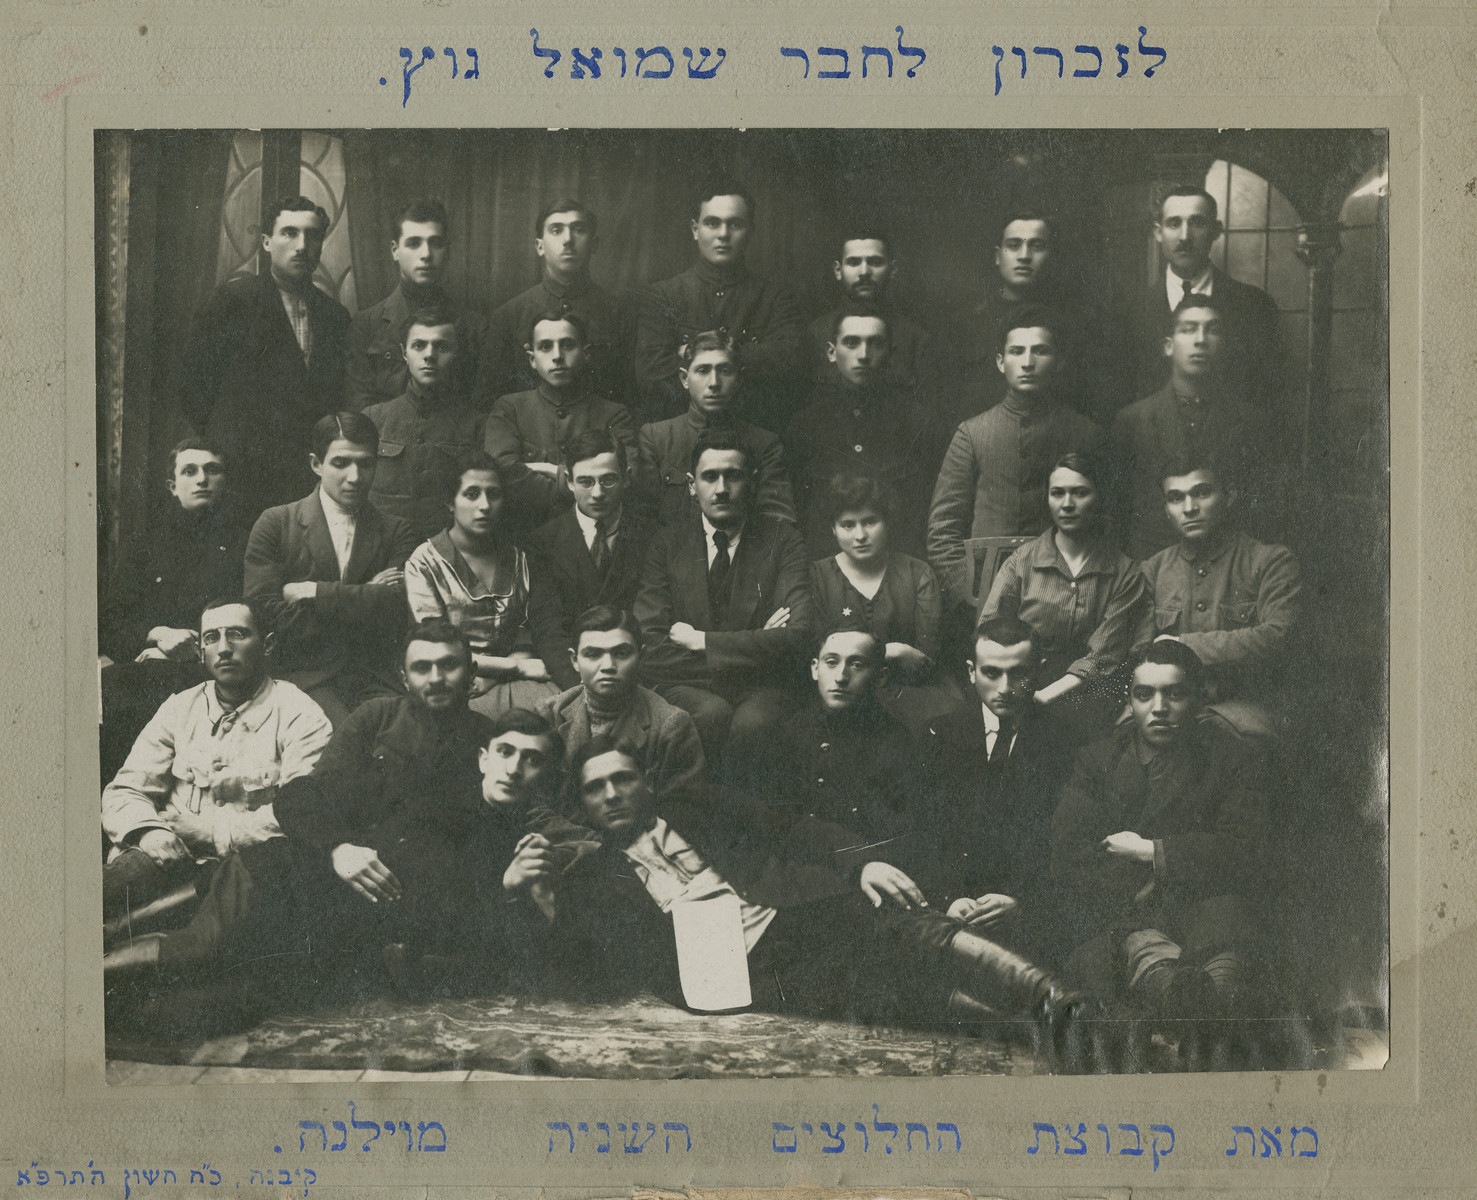 """Group portrait of Lithuanian Jewish Zionist.  The original caption reads: """"As a remembrance to our comrade Shmuel Gotz.  From the second group of pioneers from Vilna, Kaunas 1920.""""  Samuel Gotz is pictured in the second row, center with his arms folded."""